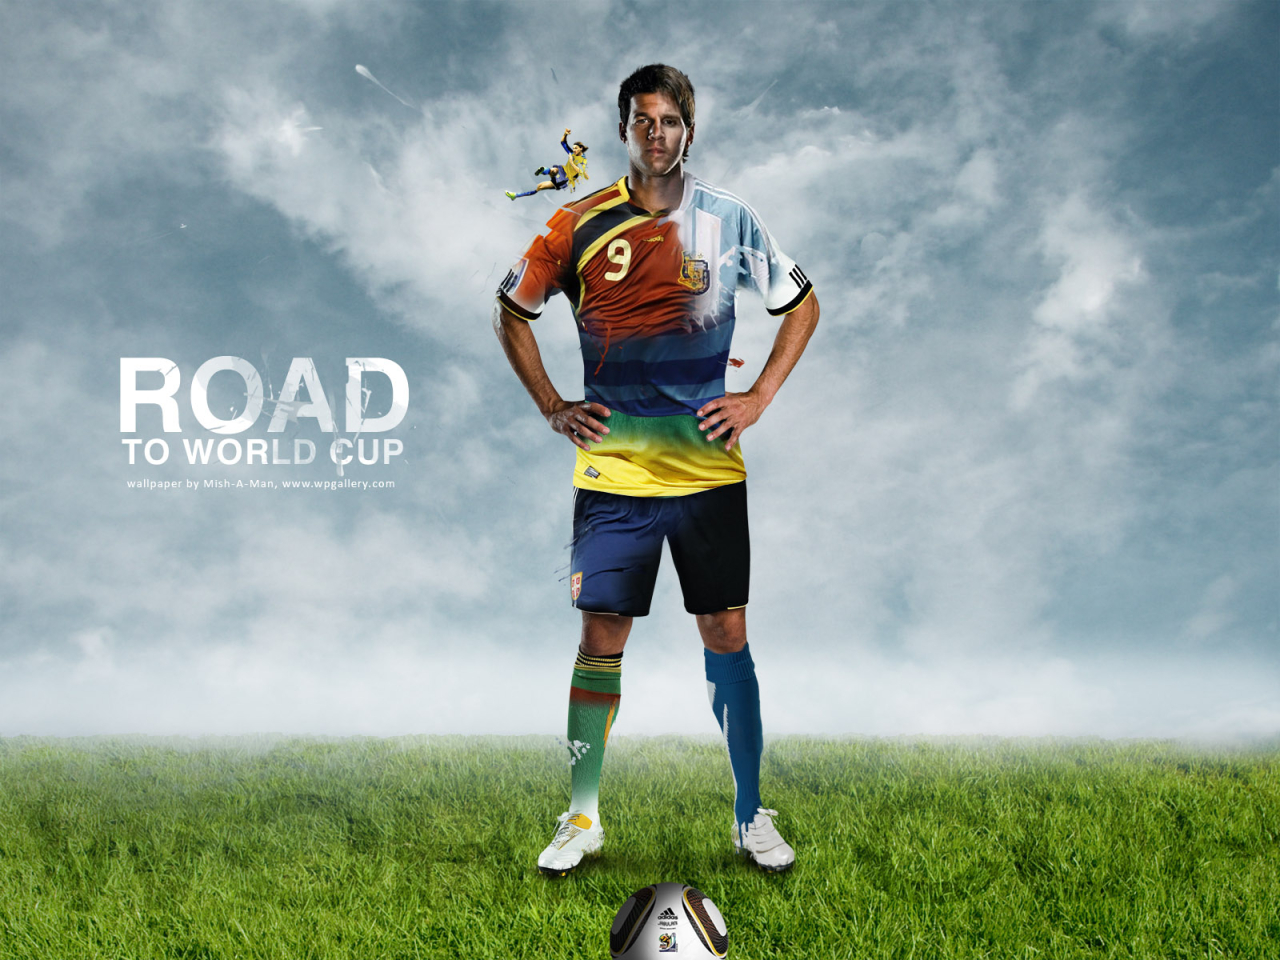 Road to World Cup for 1280 x 960 resolution